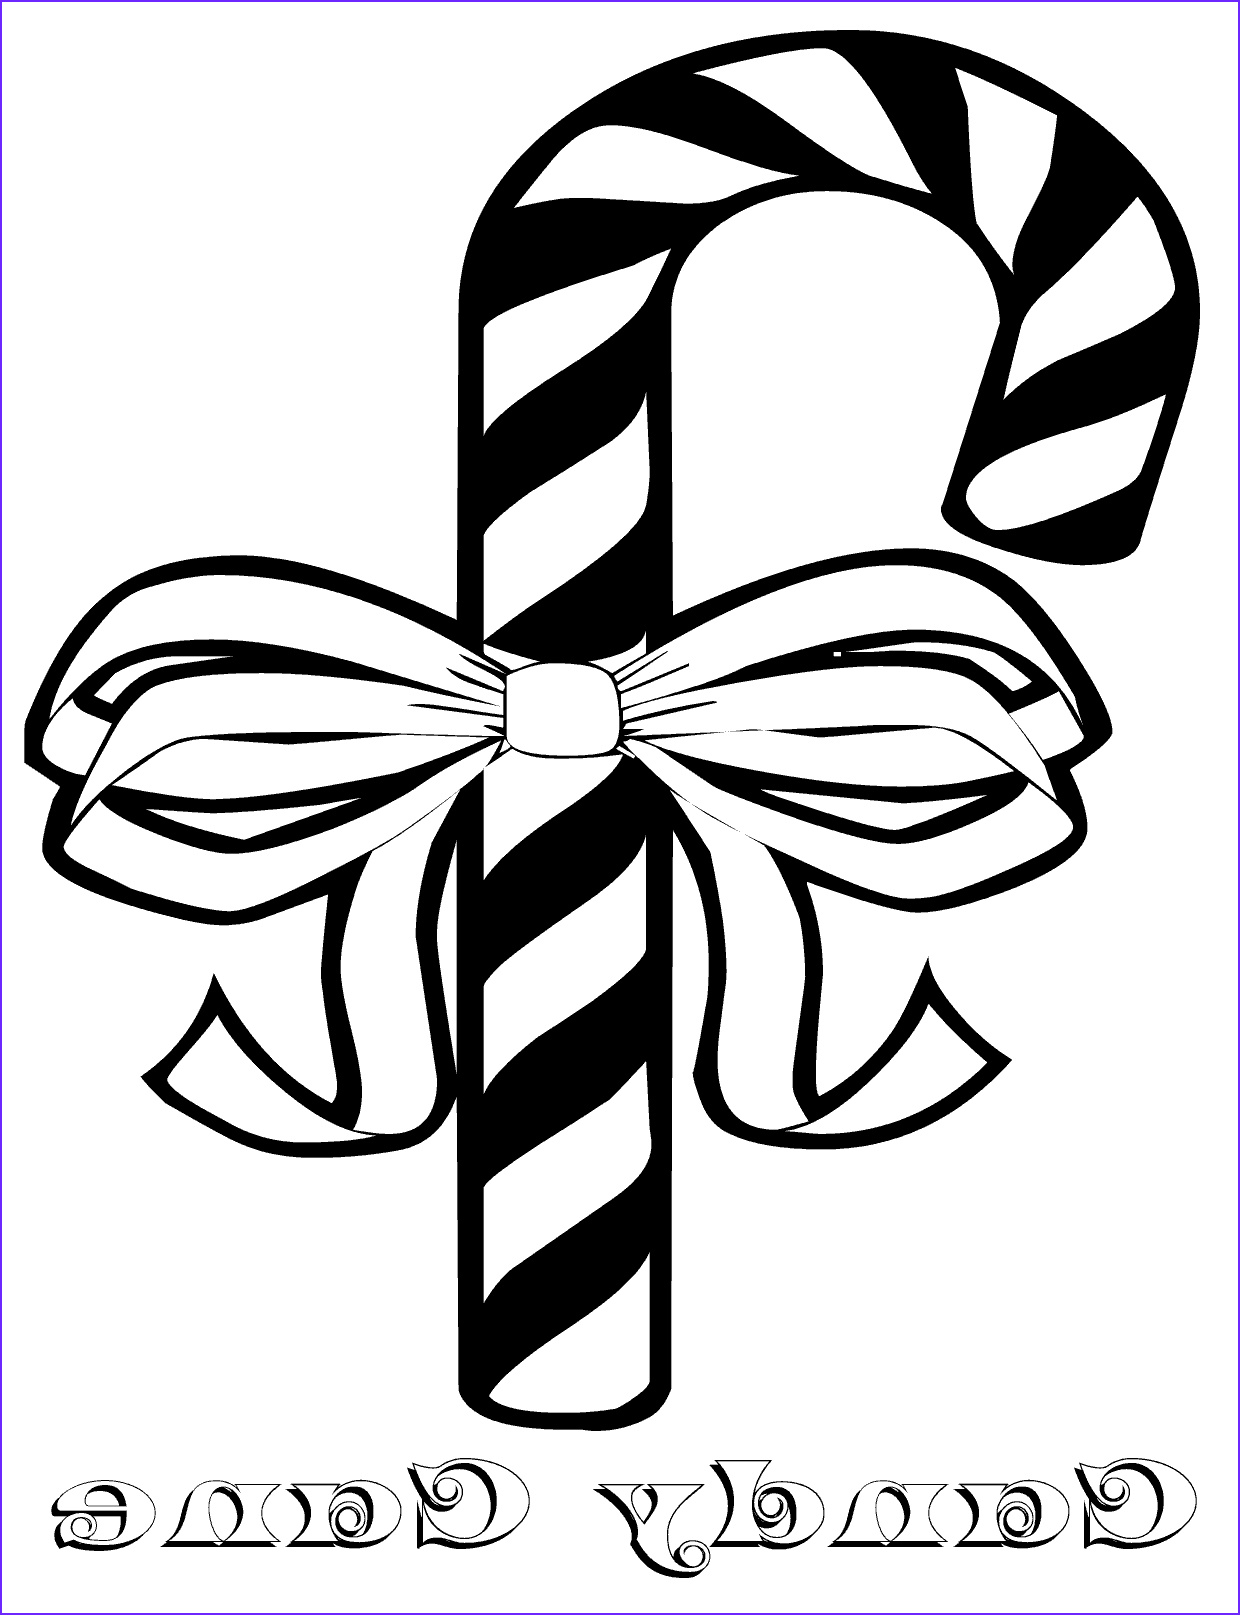 Sweets Coloring Pages Beautiful Photography Sweets Coloring Pages for Childrens Printable for Free